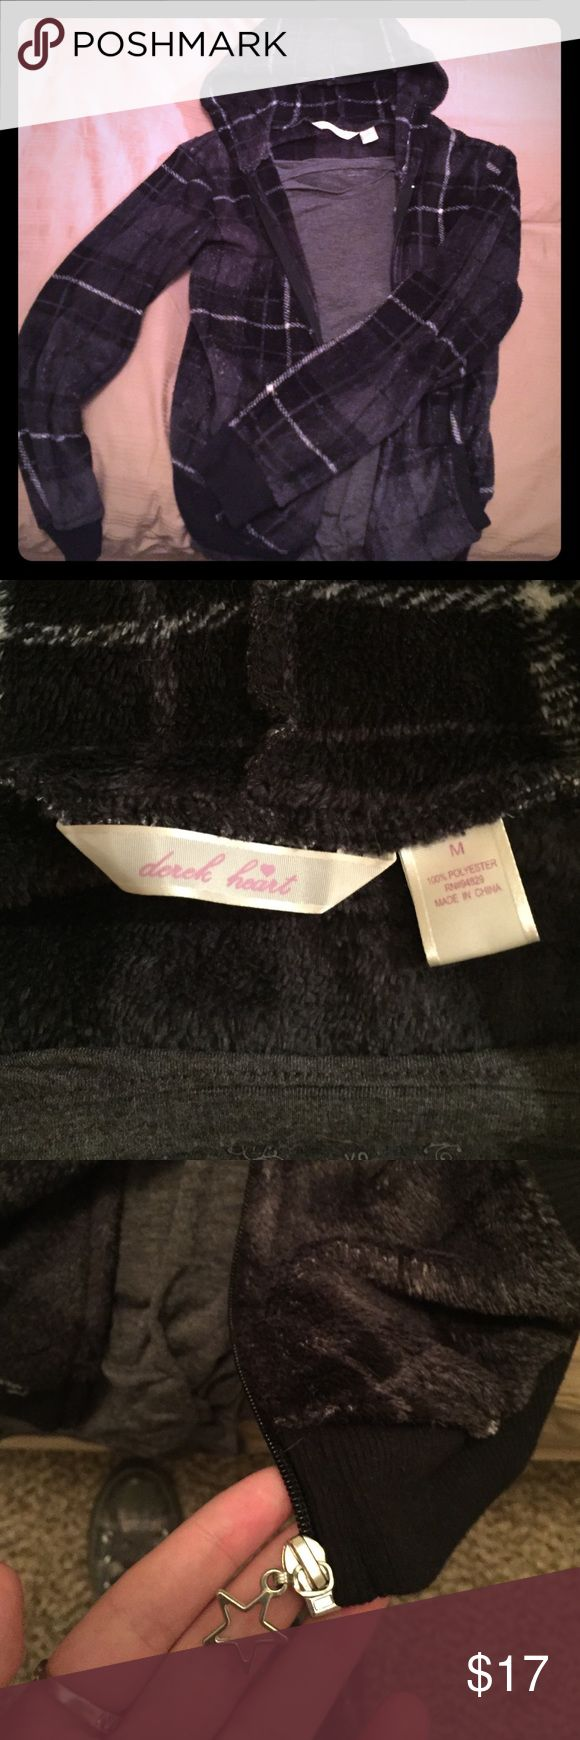 Fleece Plaid Jacket! This jacket is really soft and is in excellent condition! Jackets & Coats